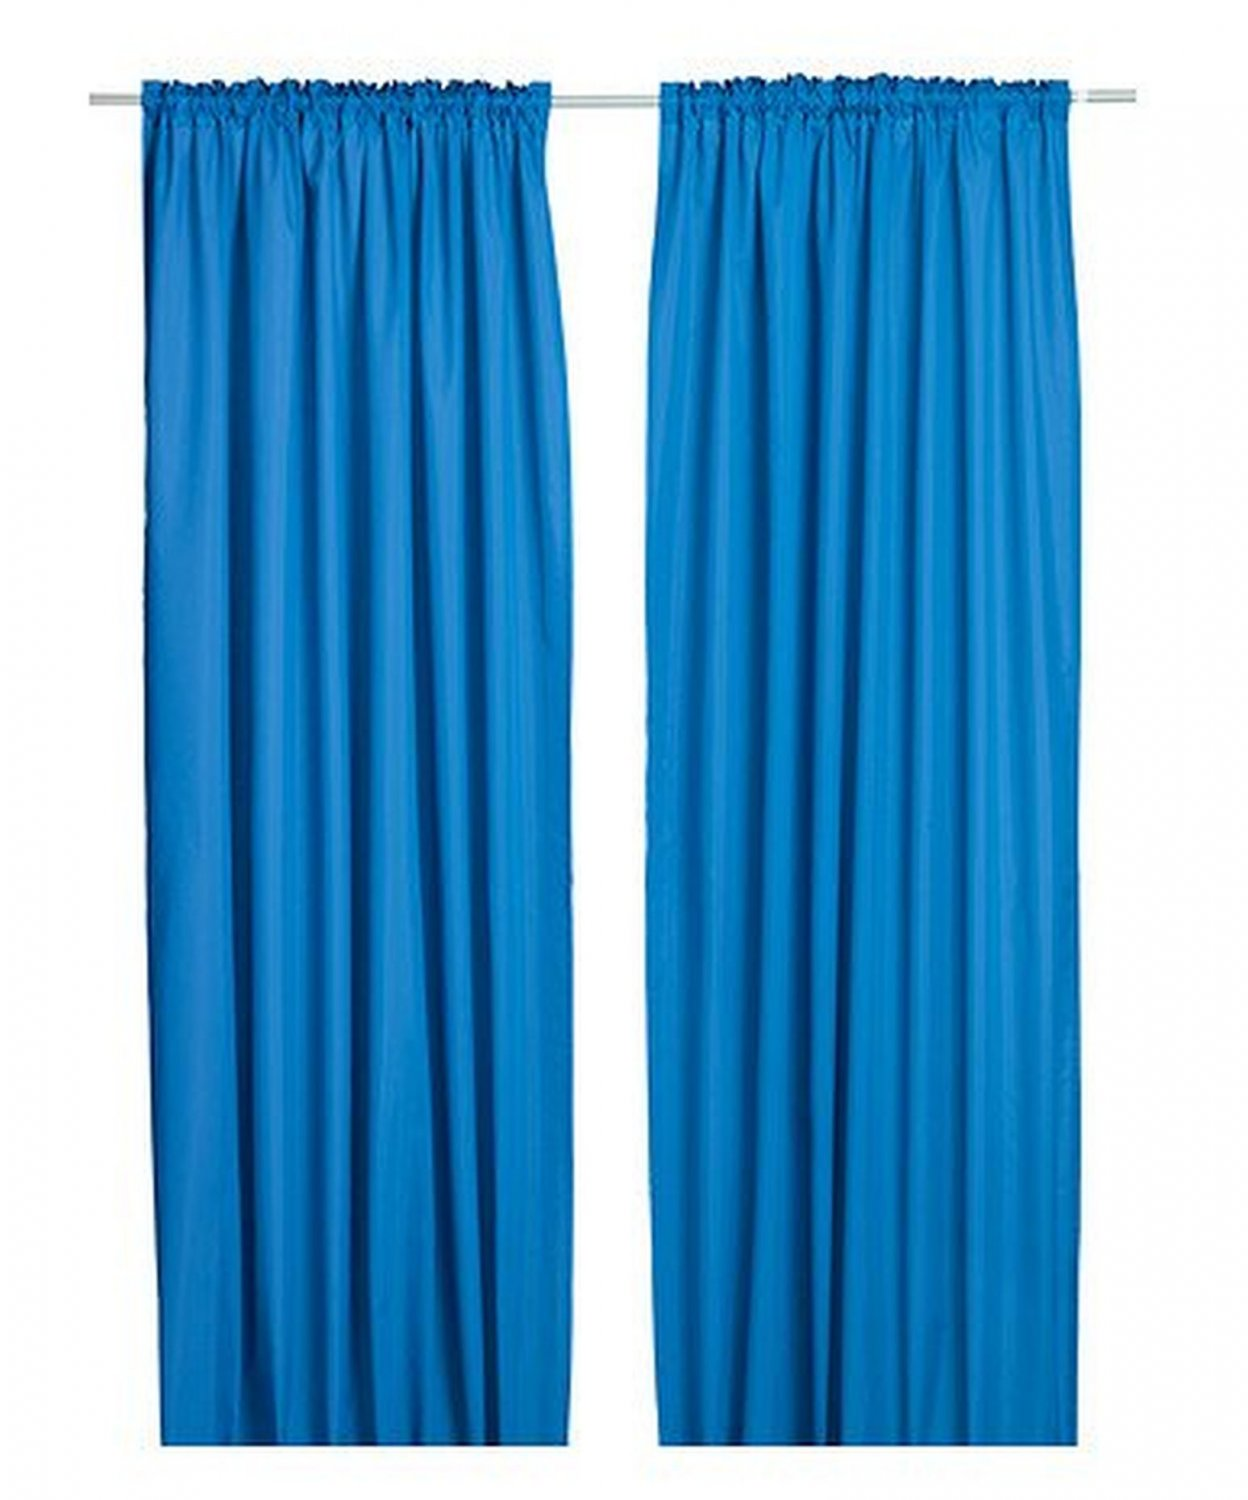 ikea vivan curtains drapes blue 2 panels. Black Bedroom Furniture Sets. Home Design Ideas